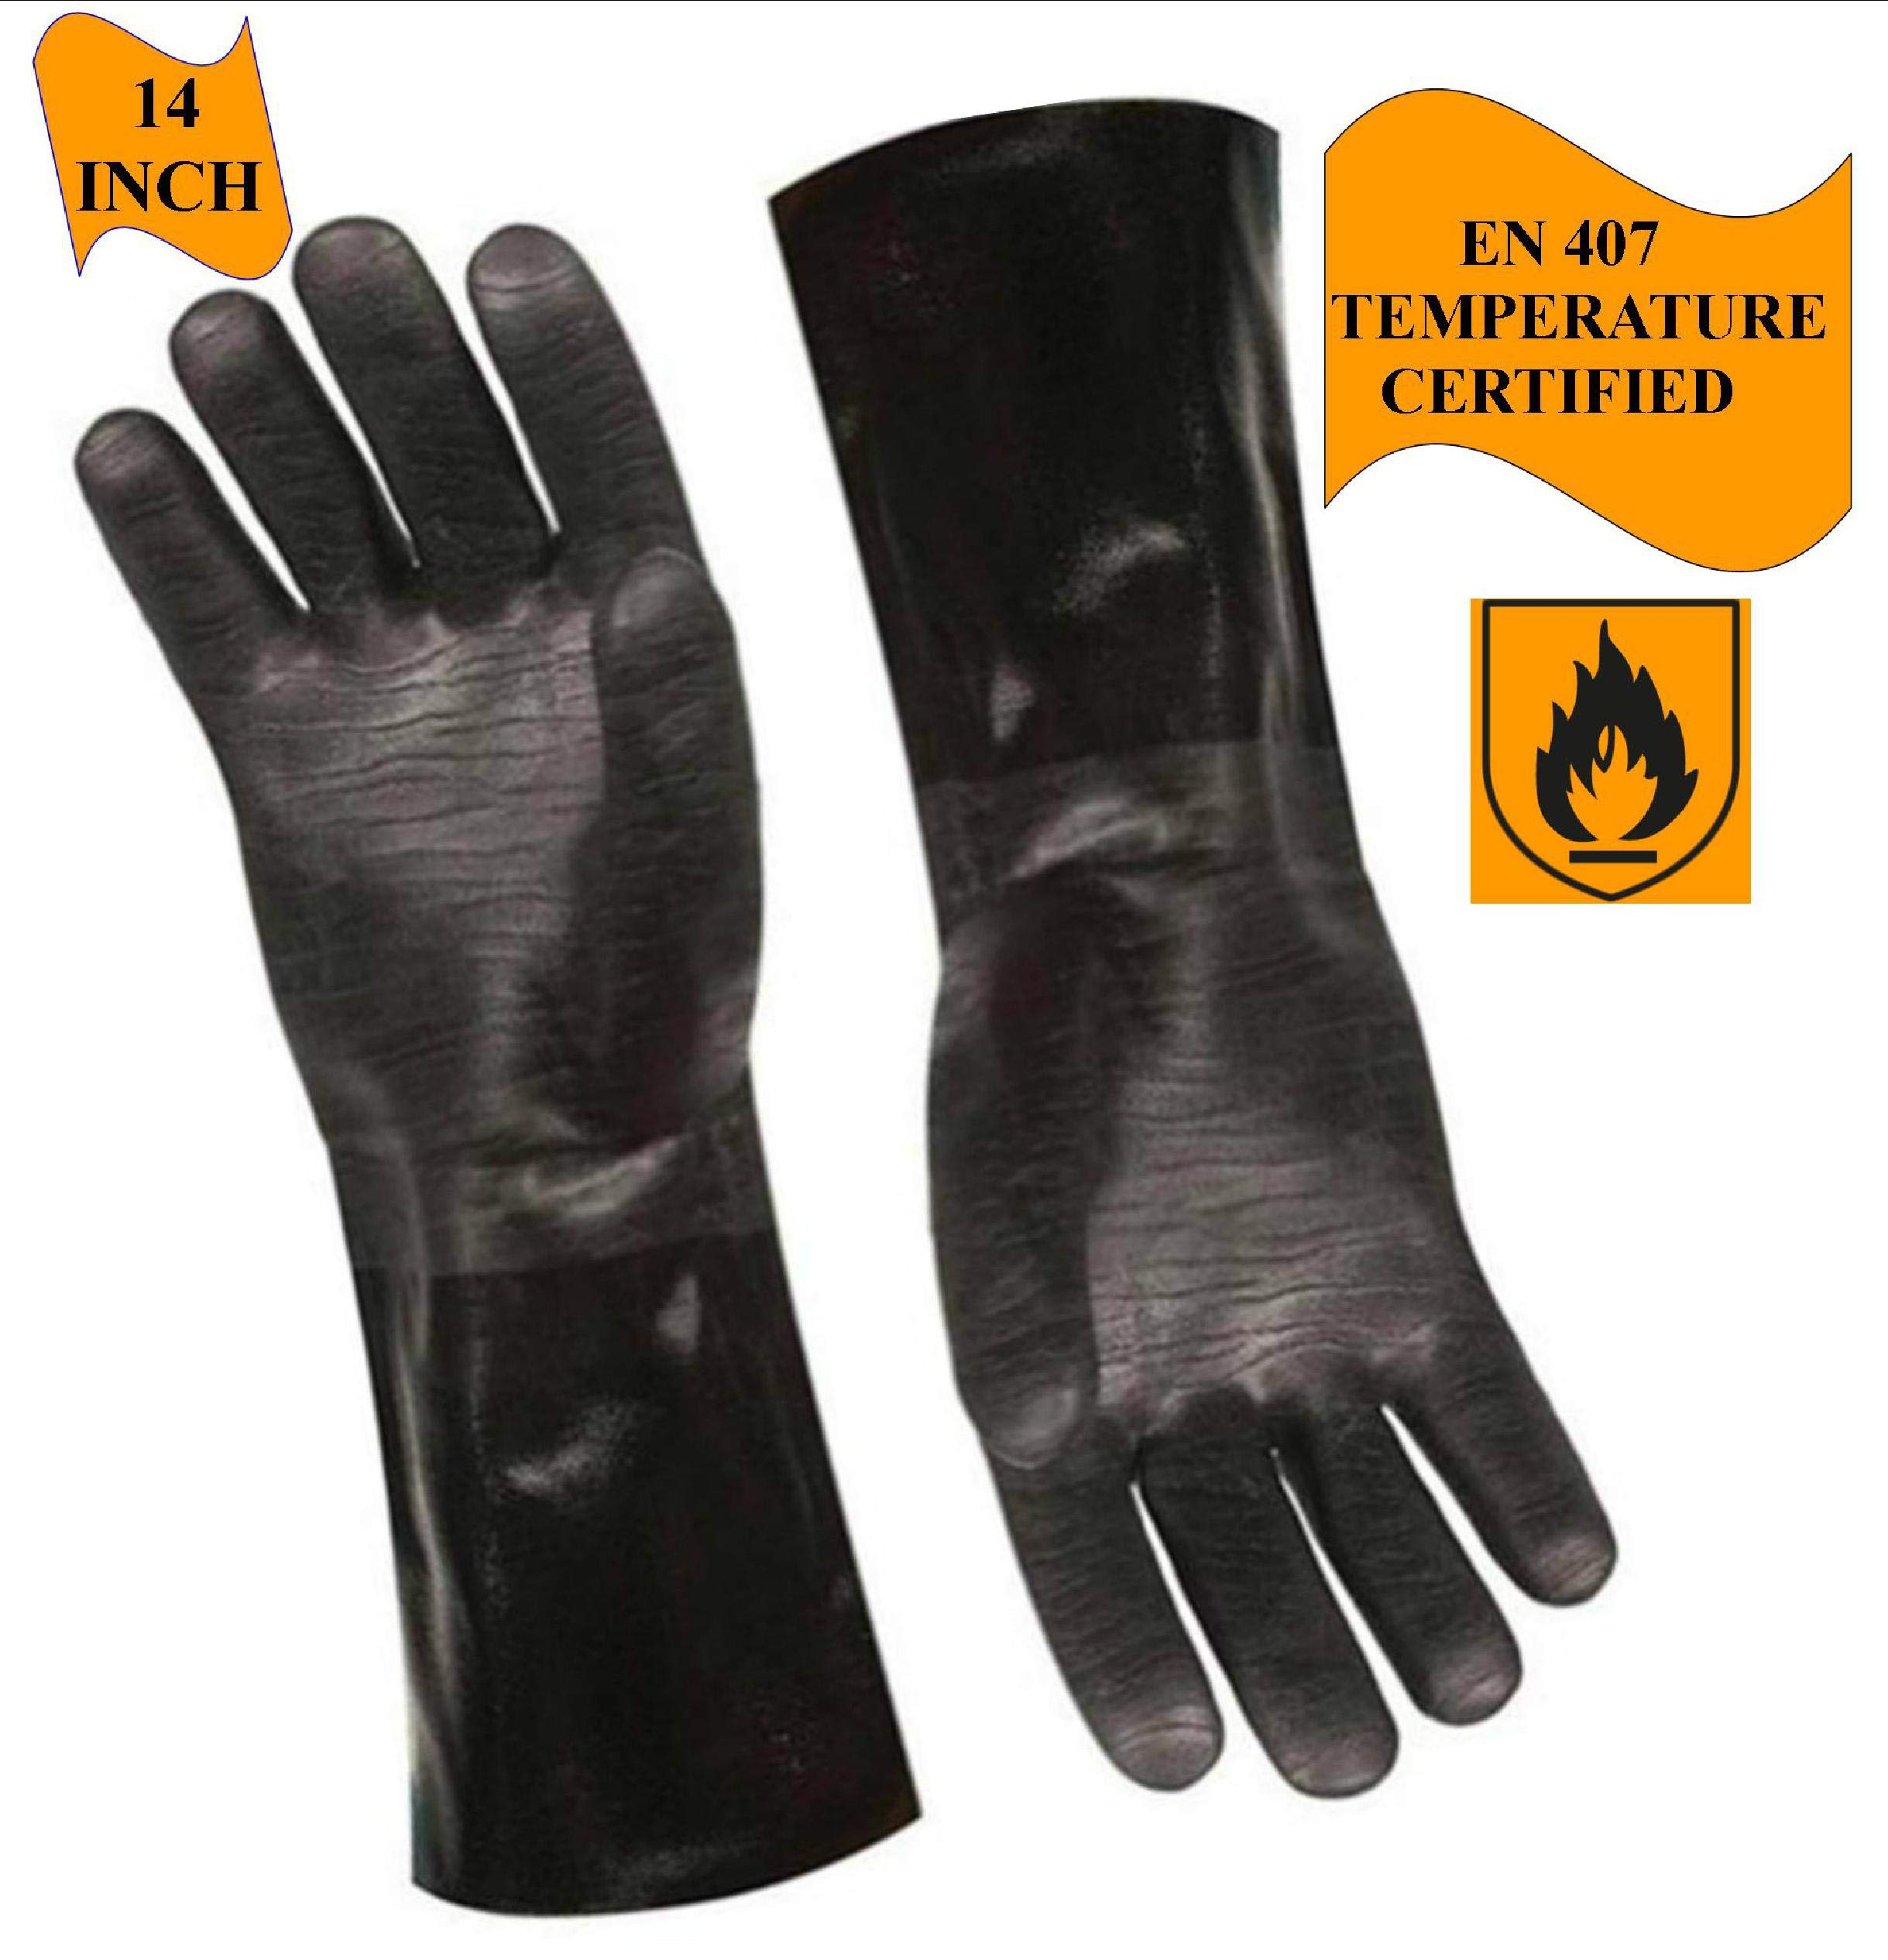 Artisan Griller BBQ Heat Resistant Insulated Smoker, Grill, Fryer, Oven, Brewing, Cooking Gloves. Great for Barbecue/Frying/Grilling - Waterproof, Fire&Oil Resistant Neoprene-1 Pair Size 9/LG-14'' by ARTISAN GRILLER REDEFINING OUTDOOR COOKING